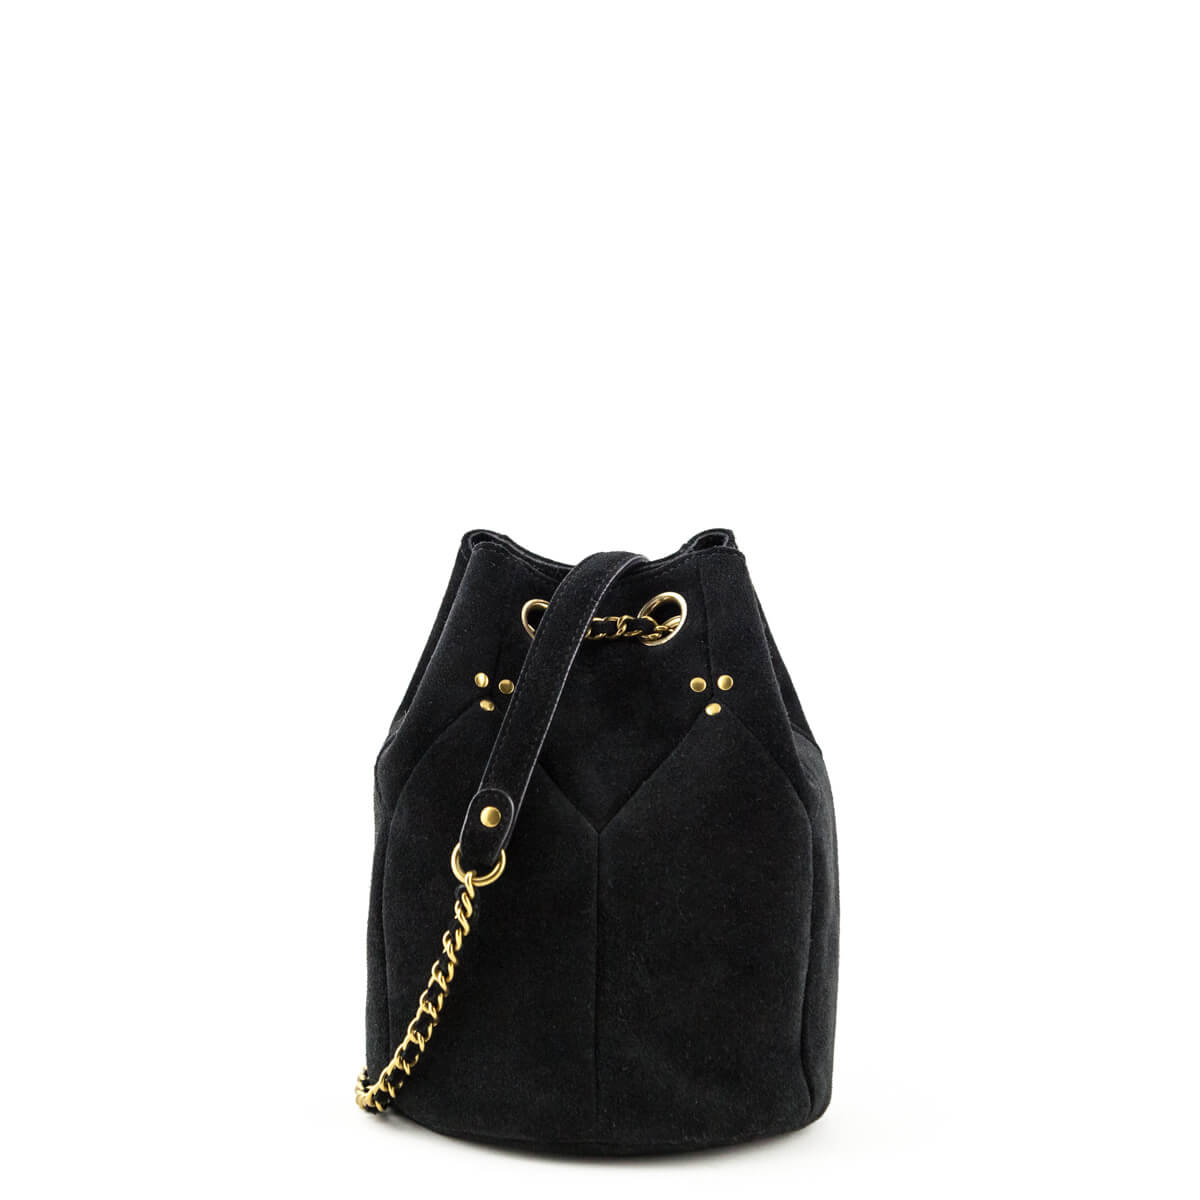 Jerome Dreyfuss Black Suede Popeye Bucket bag - LOVE that BAG - Preowned  Authentic Designer Handbags ... 5a2662b1494bf